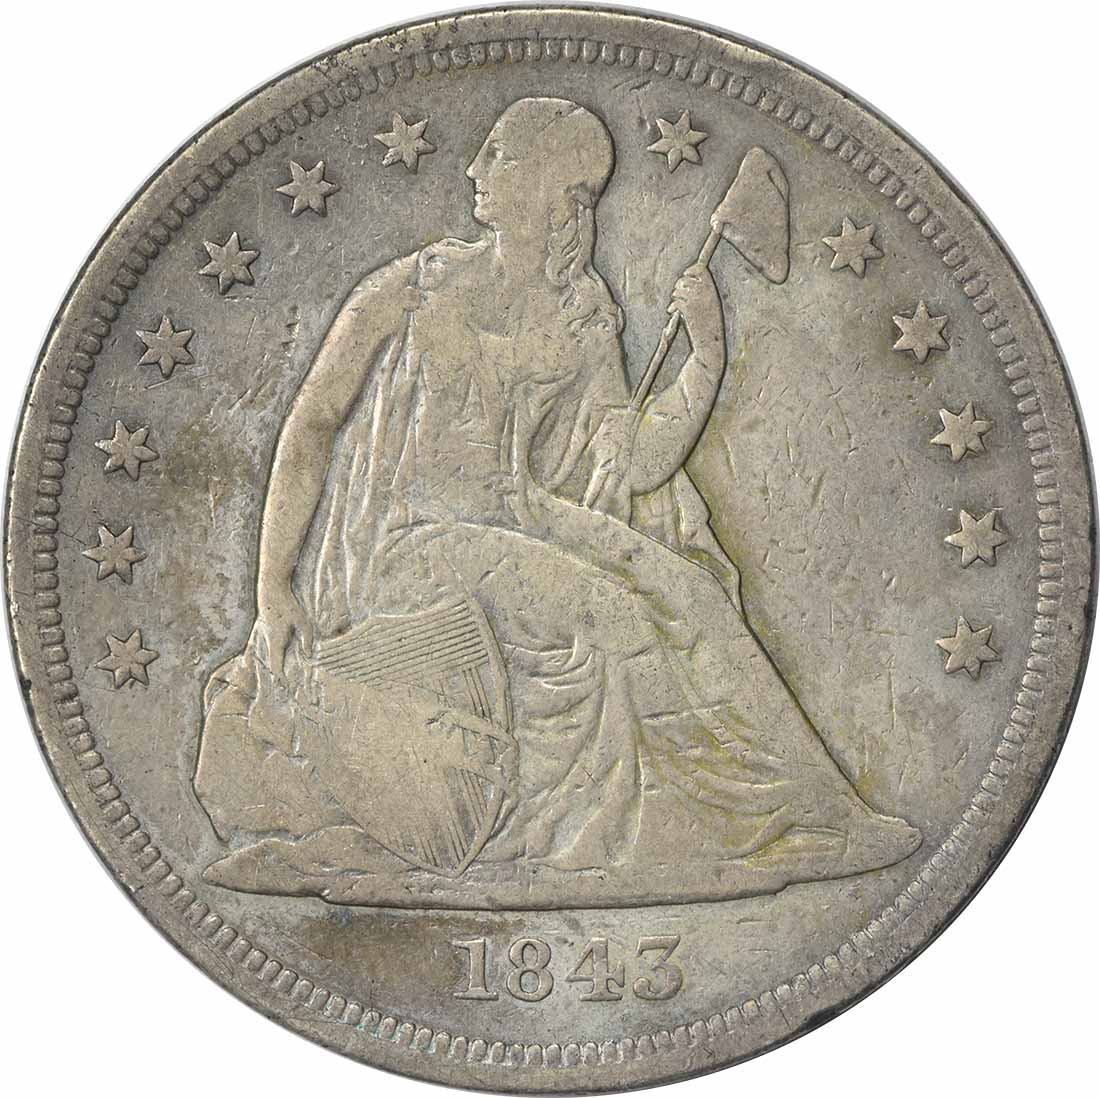 1843 Liberty Seated Silver Dollar VG Uncertified